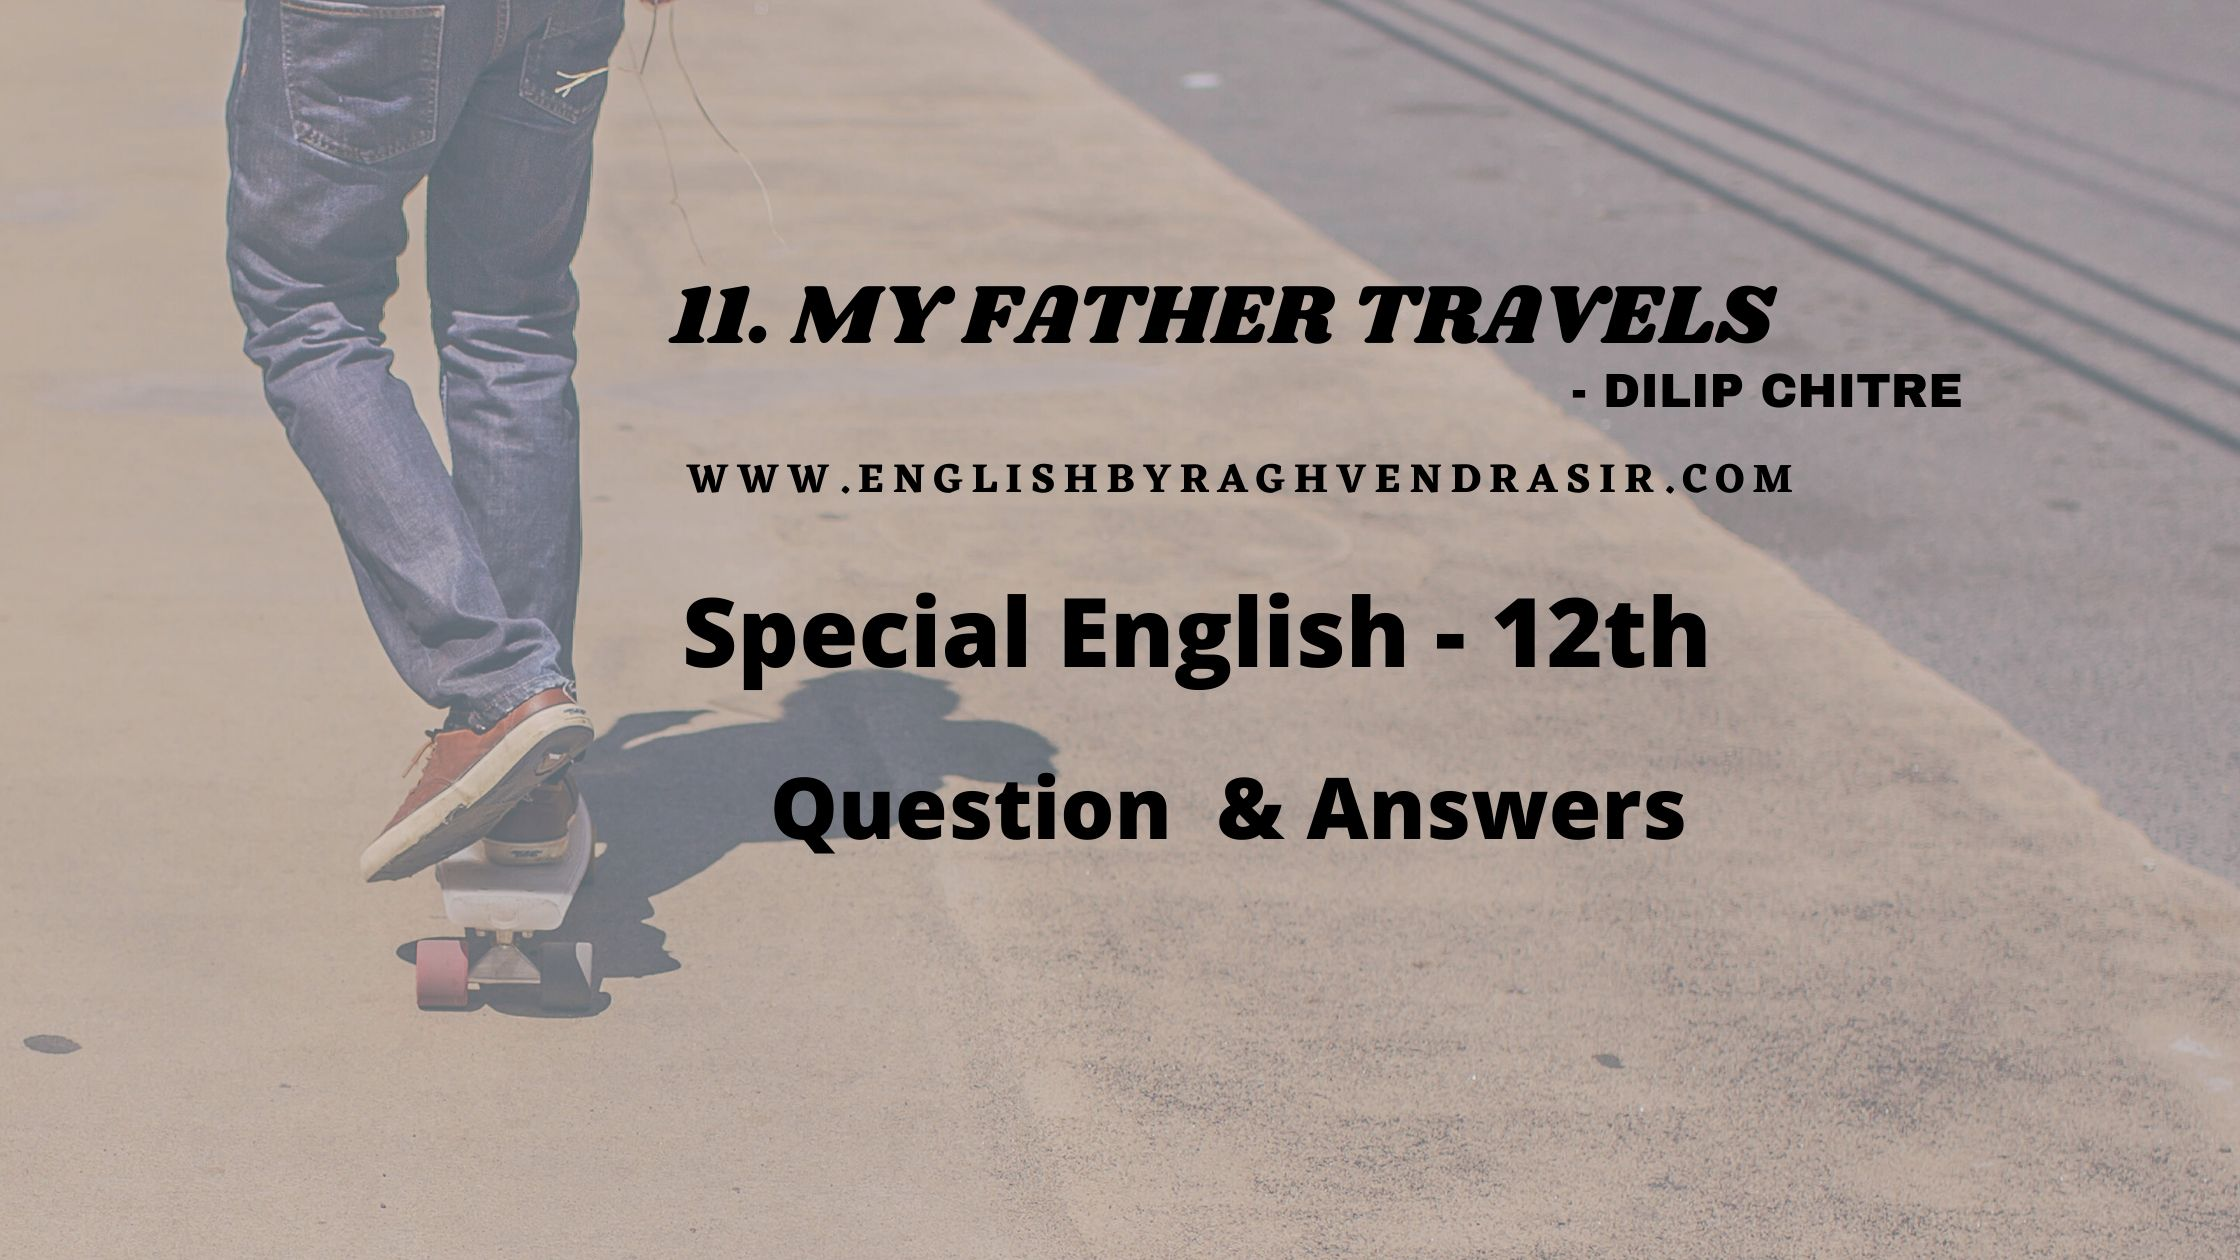 My Father Travels - Dilip Chitre